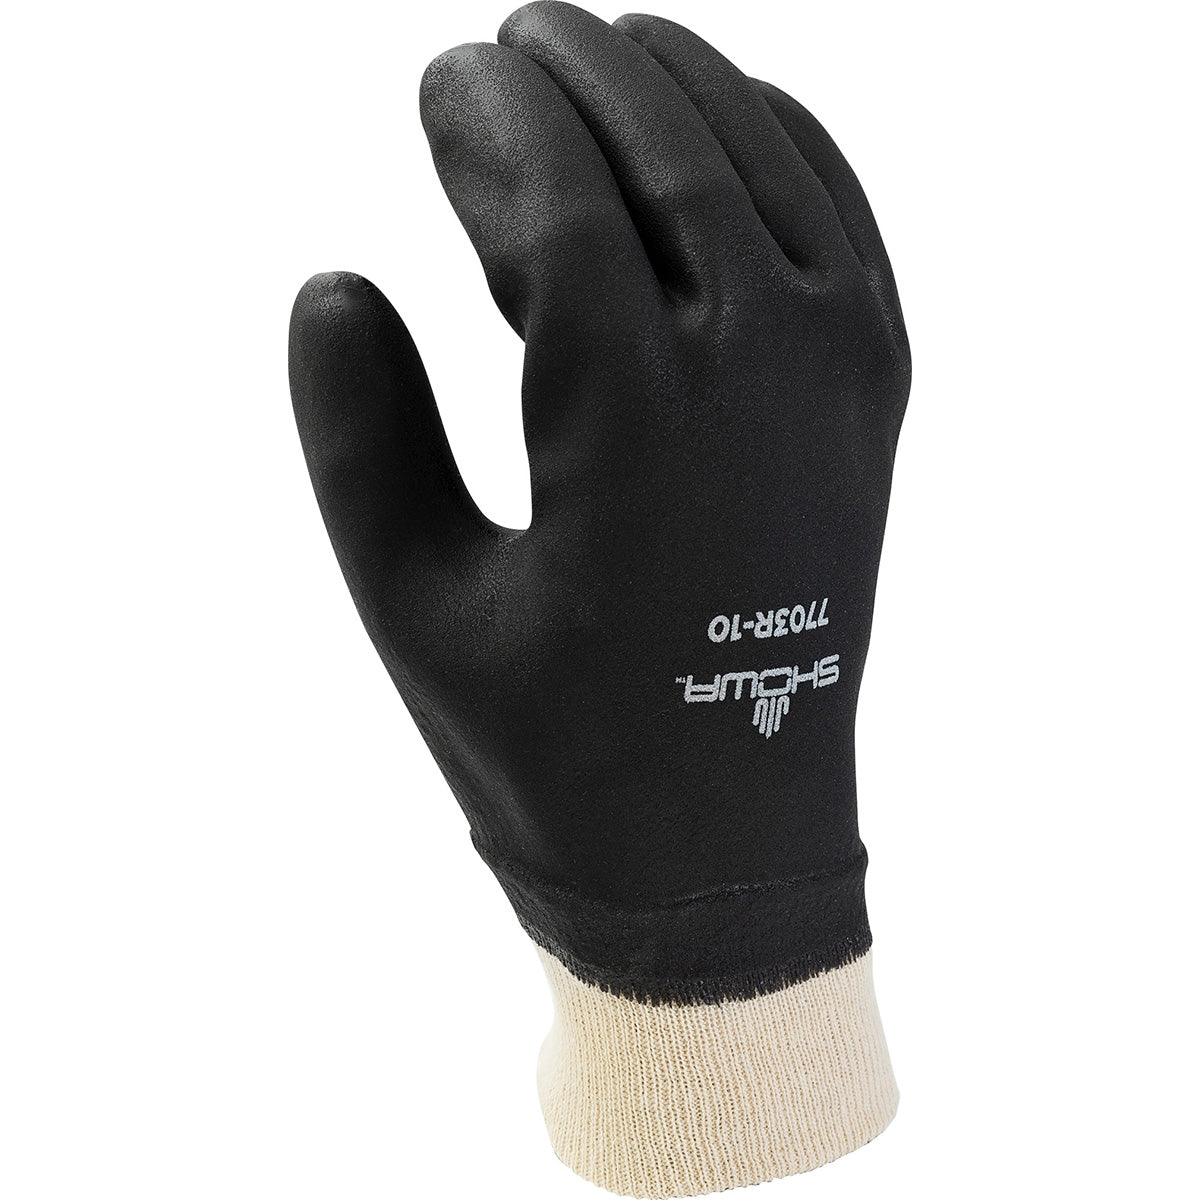 Showa 7703R PVC Coated Knit Wrist Rough Finish Work Glove (Pack of 12 Pairs) Work Gloves and Hats - Cleanflow